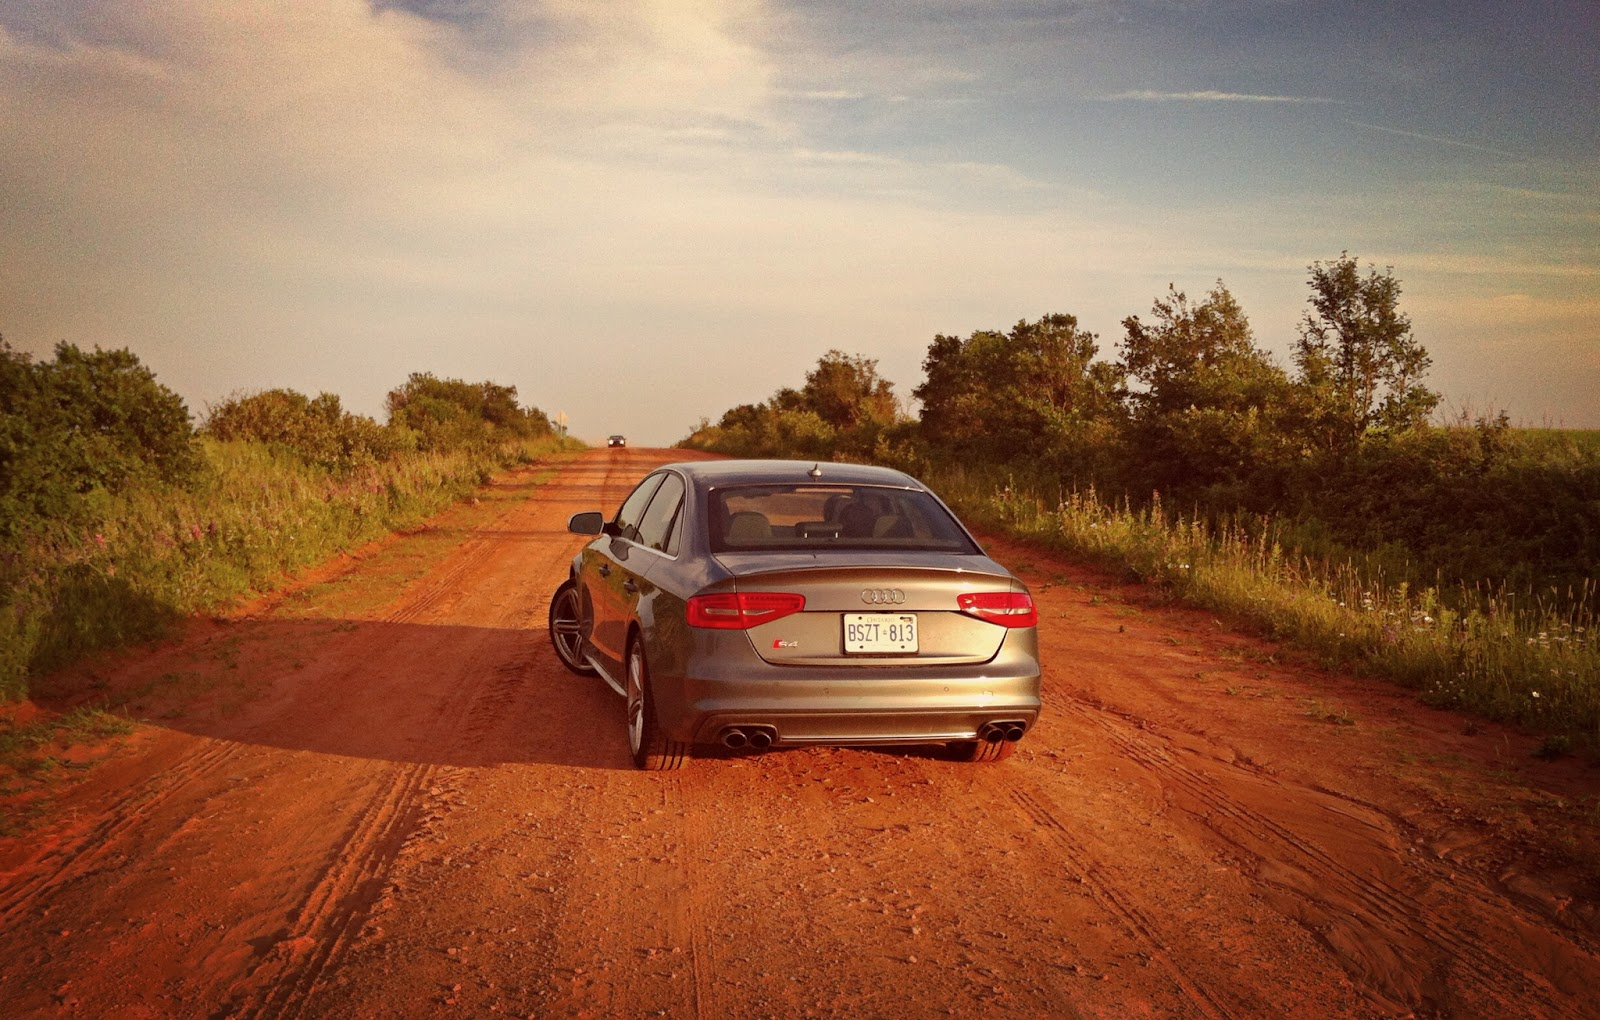 2014 Audi S4 red dirt road PEI